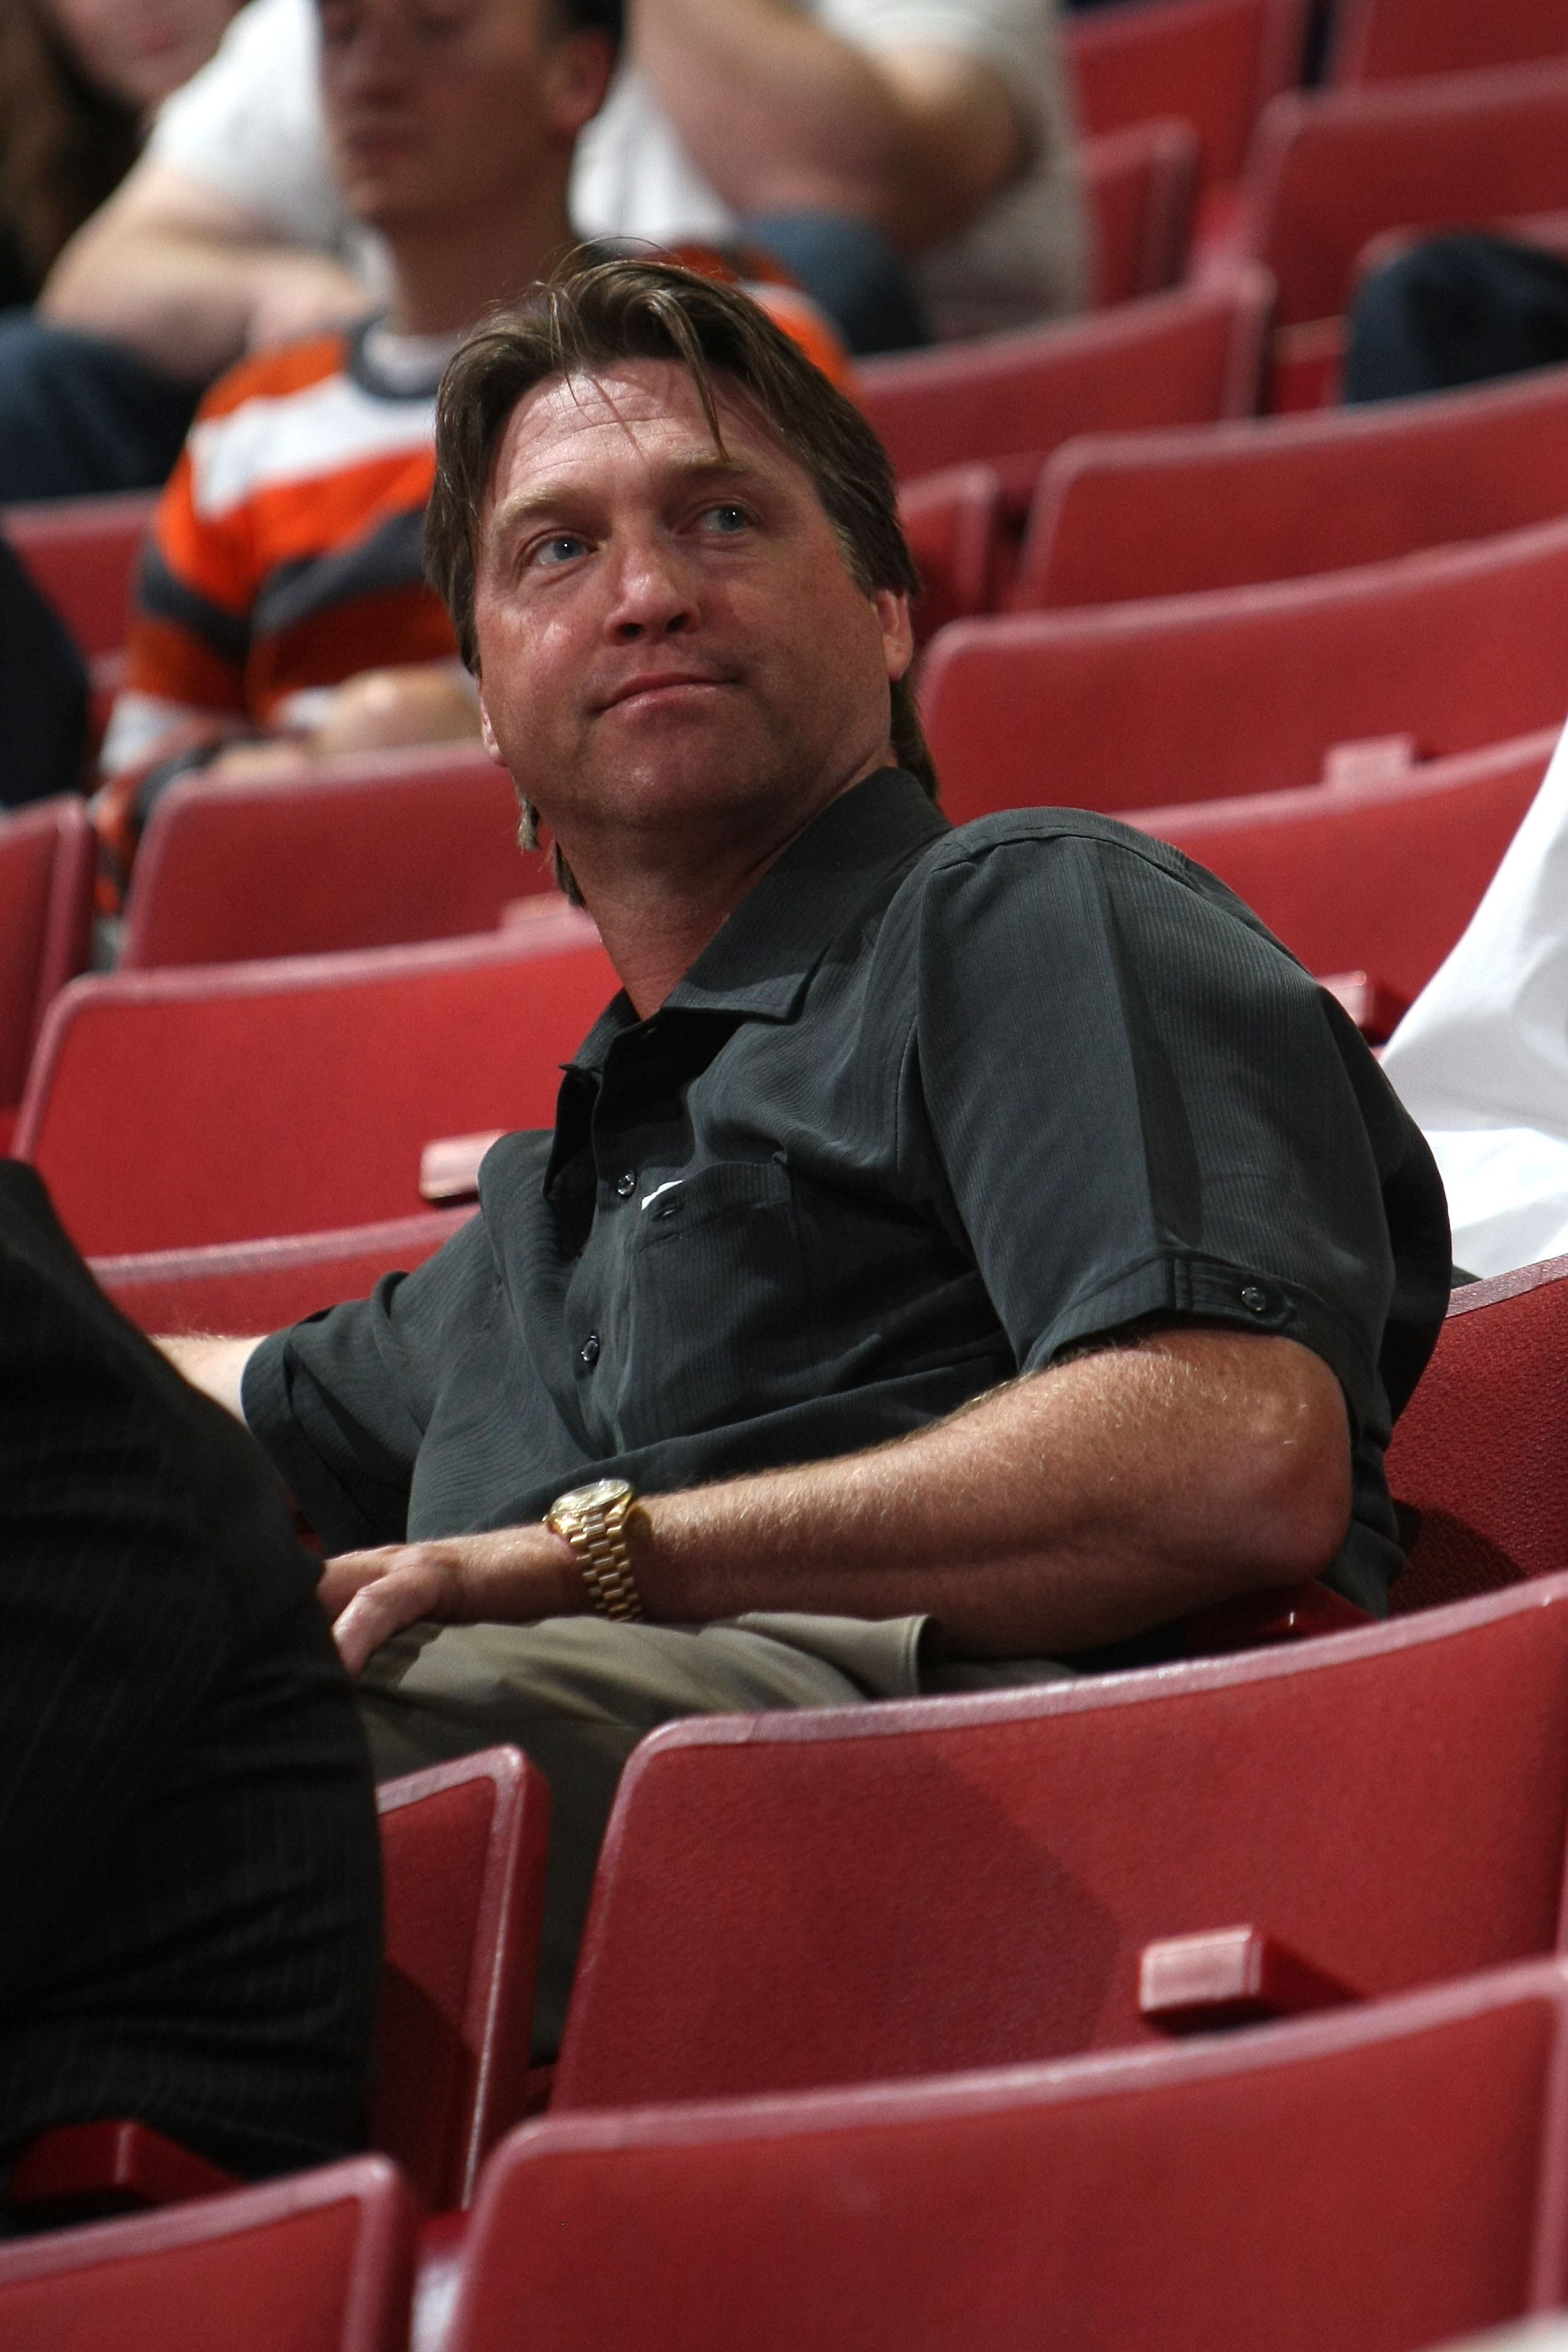 Patrick Roy looks on from the stands during the second day of the 2009 NHL Entry Draft at the Bell Centre on June 27, 2009 in Montreal, Quebec, Canada.